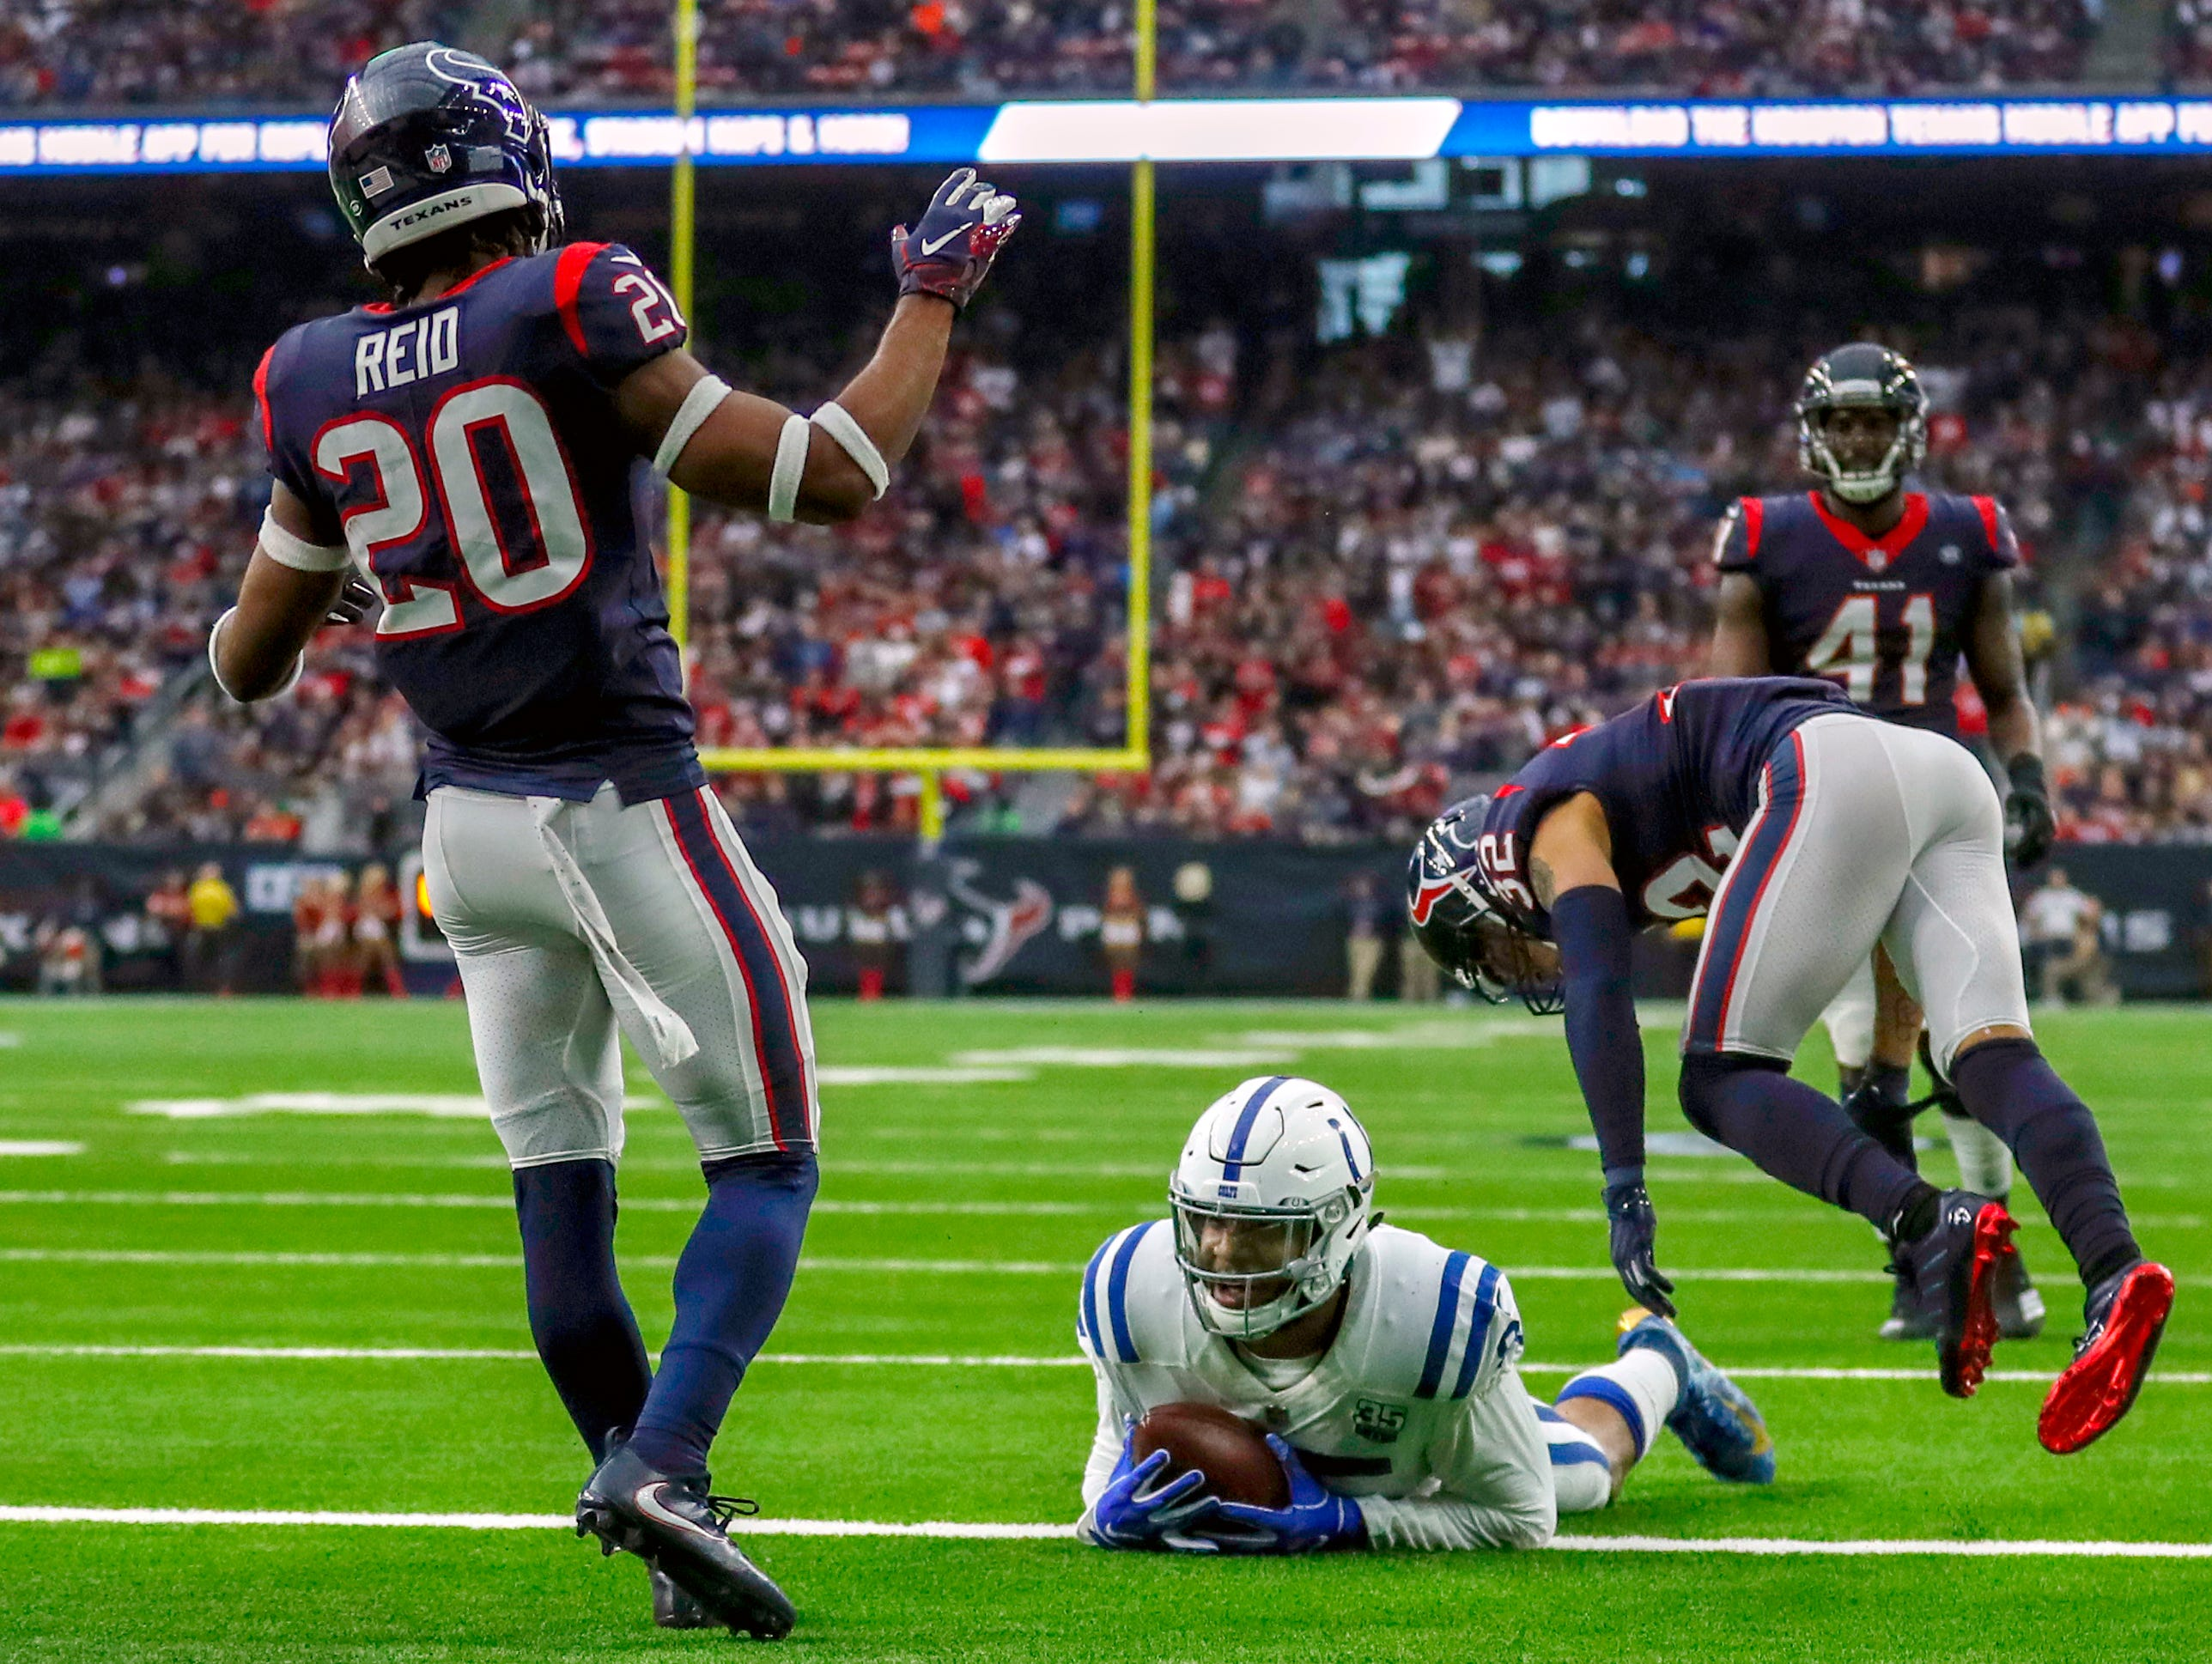 Indianapolis Colts tight end Eric Ebron (85) rolls into the end zone after a pass from Colts quarterback Andrew Luck (12) against the Houston Texans at NRG Stadium in Houston on Sunday, Dec. 9, 2018.